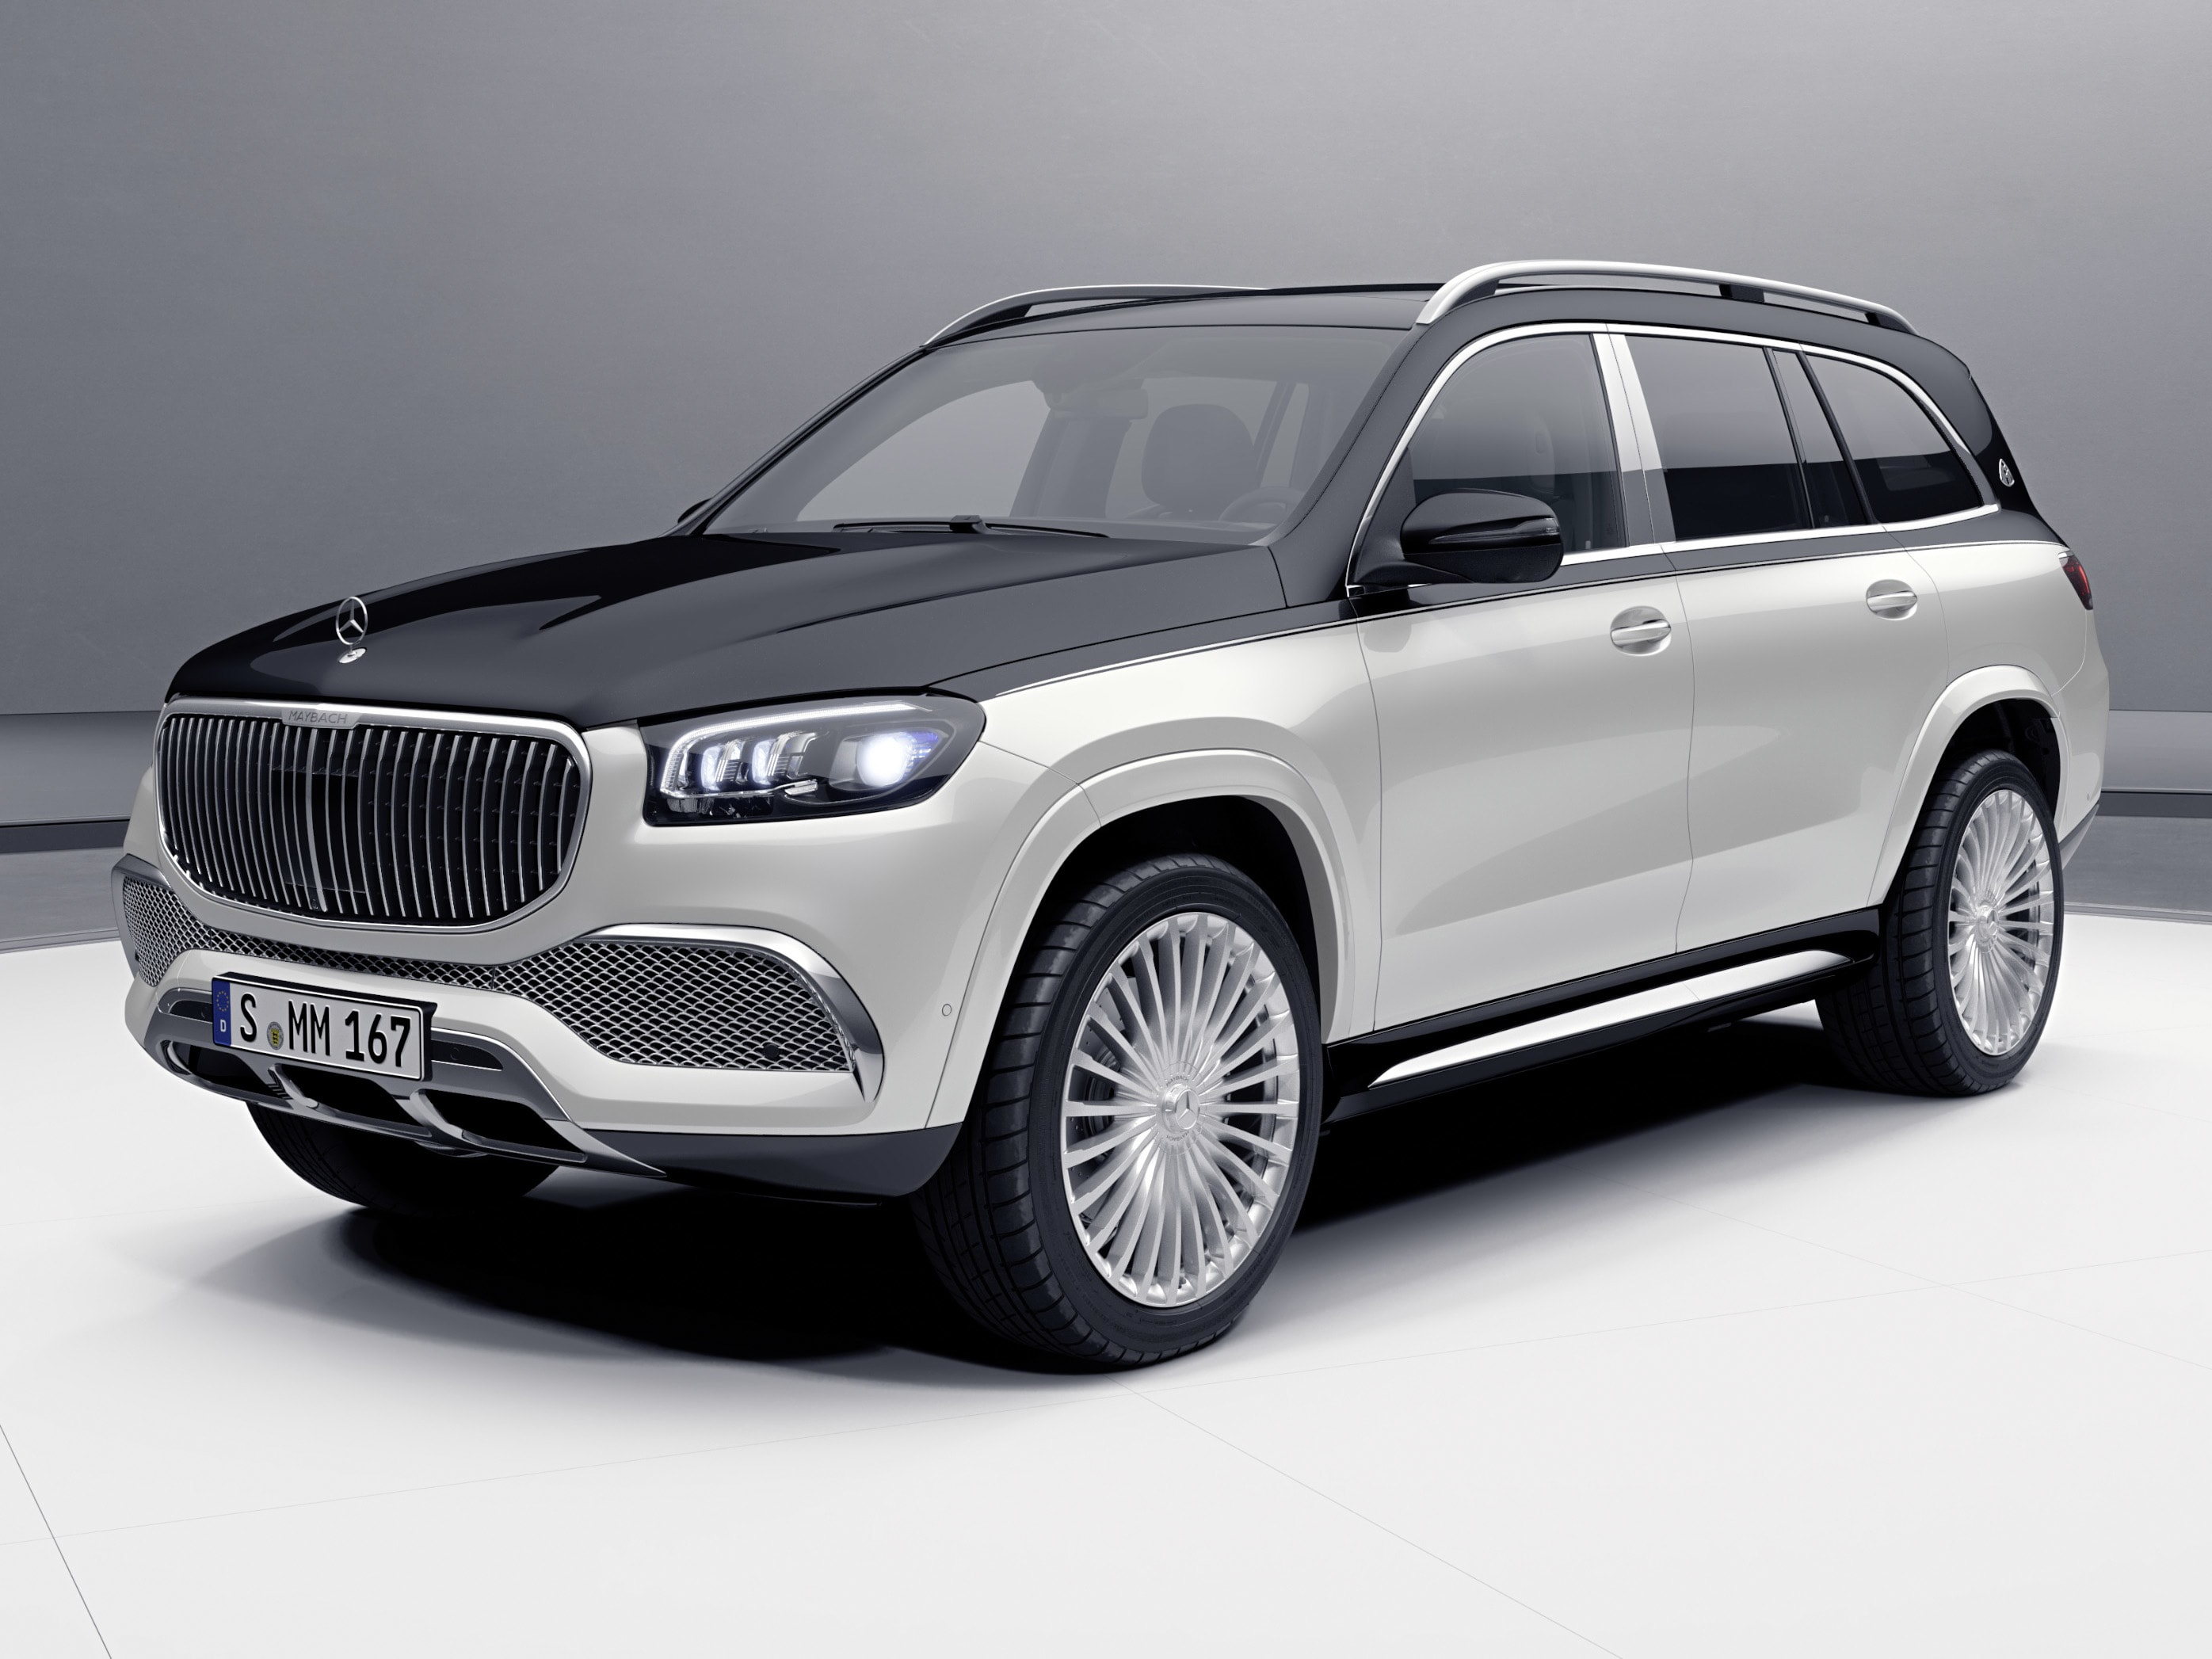 2020 Mercedes Maybach Gls600 Revealed Caradvice